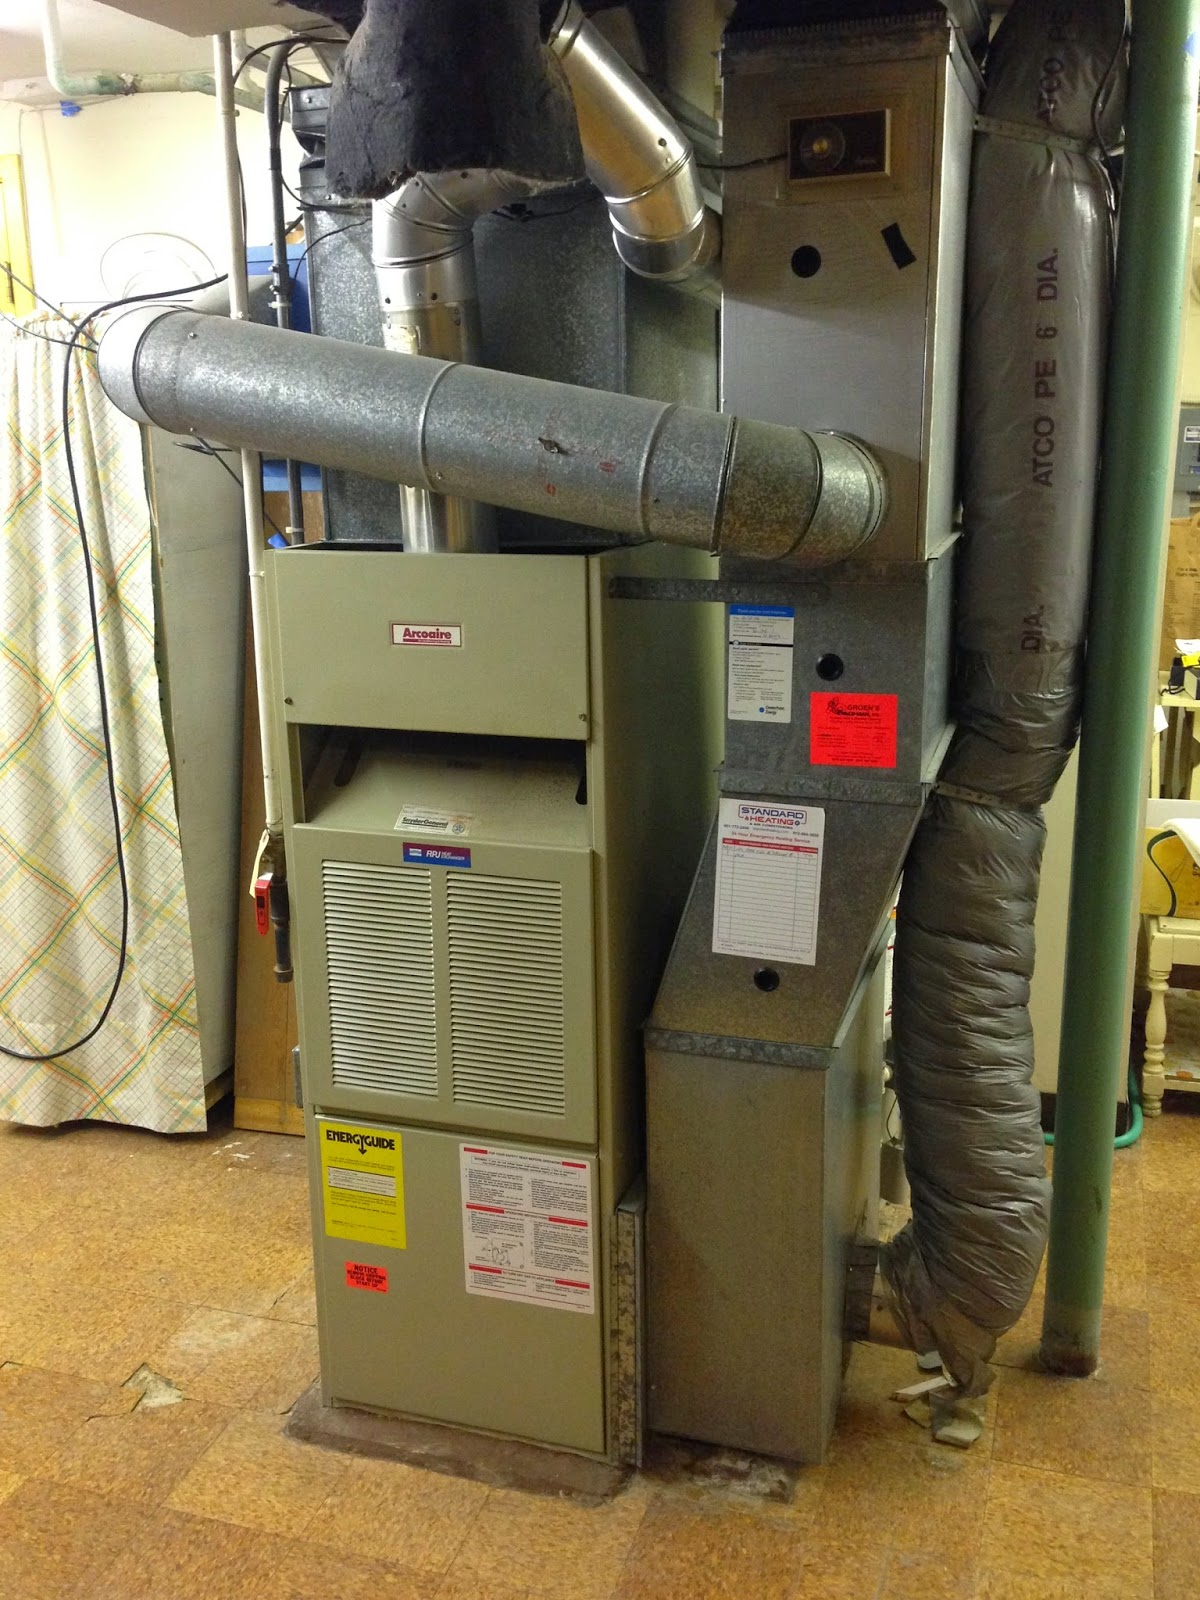 Jeremy's Blog: New furnace and air conditioner